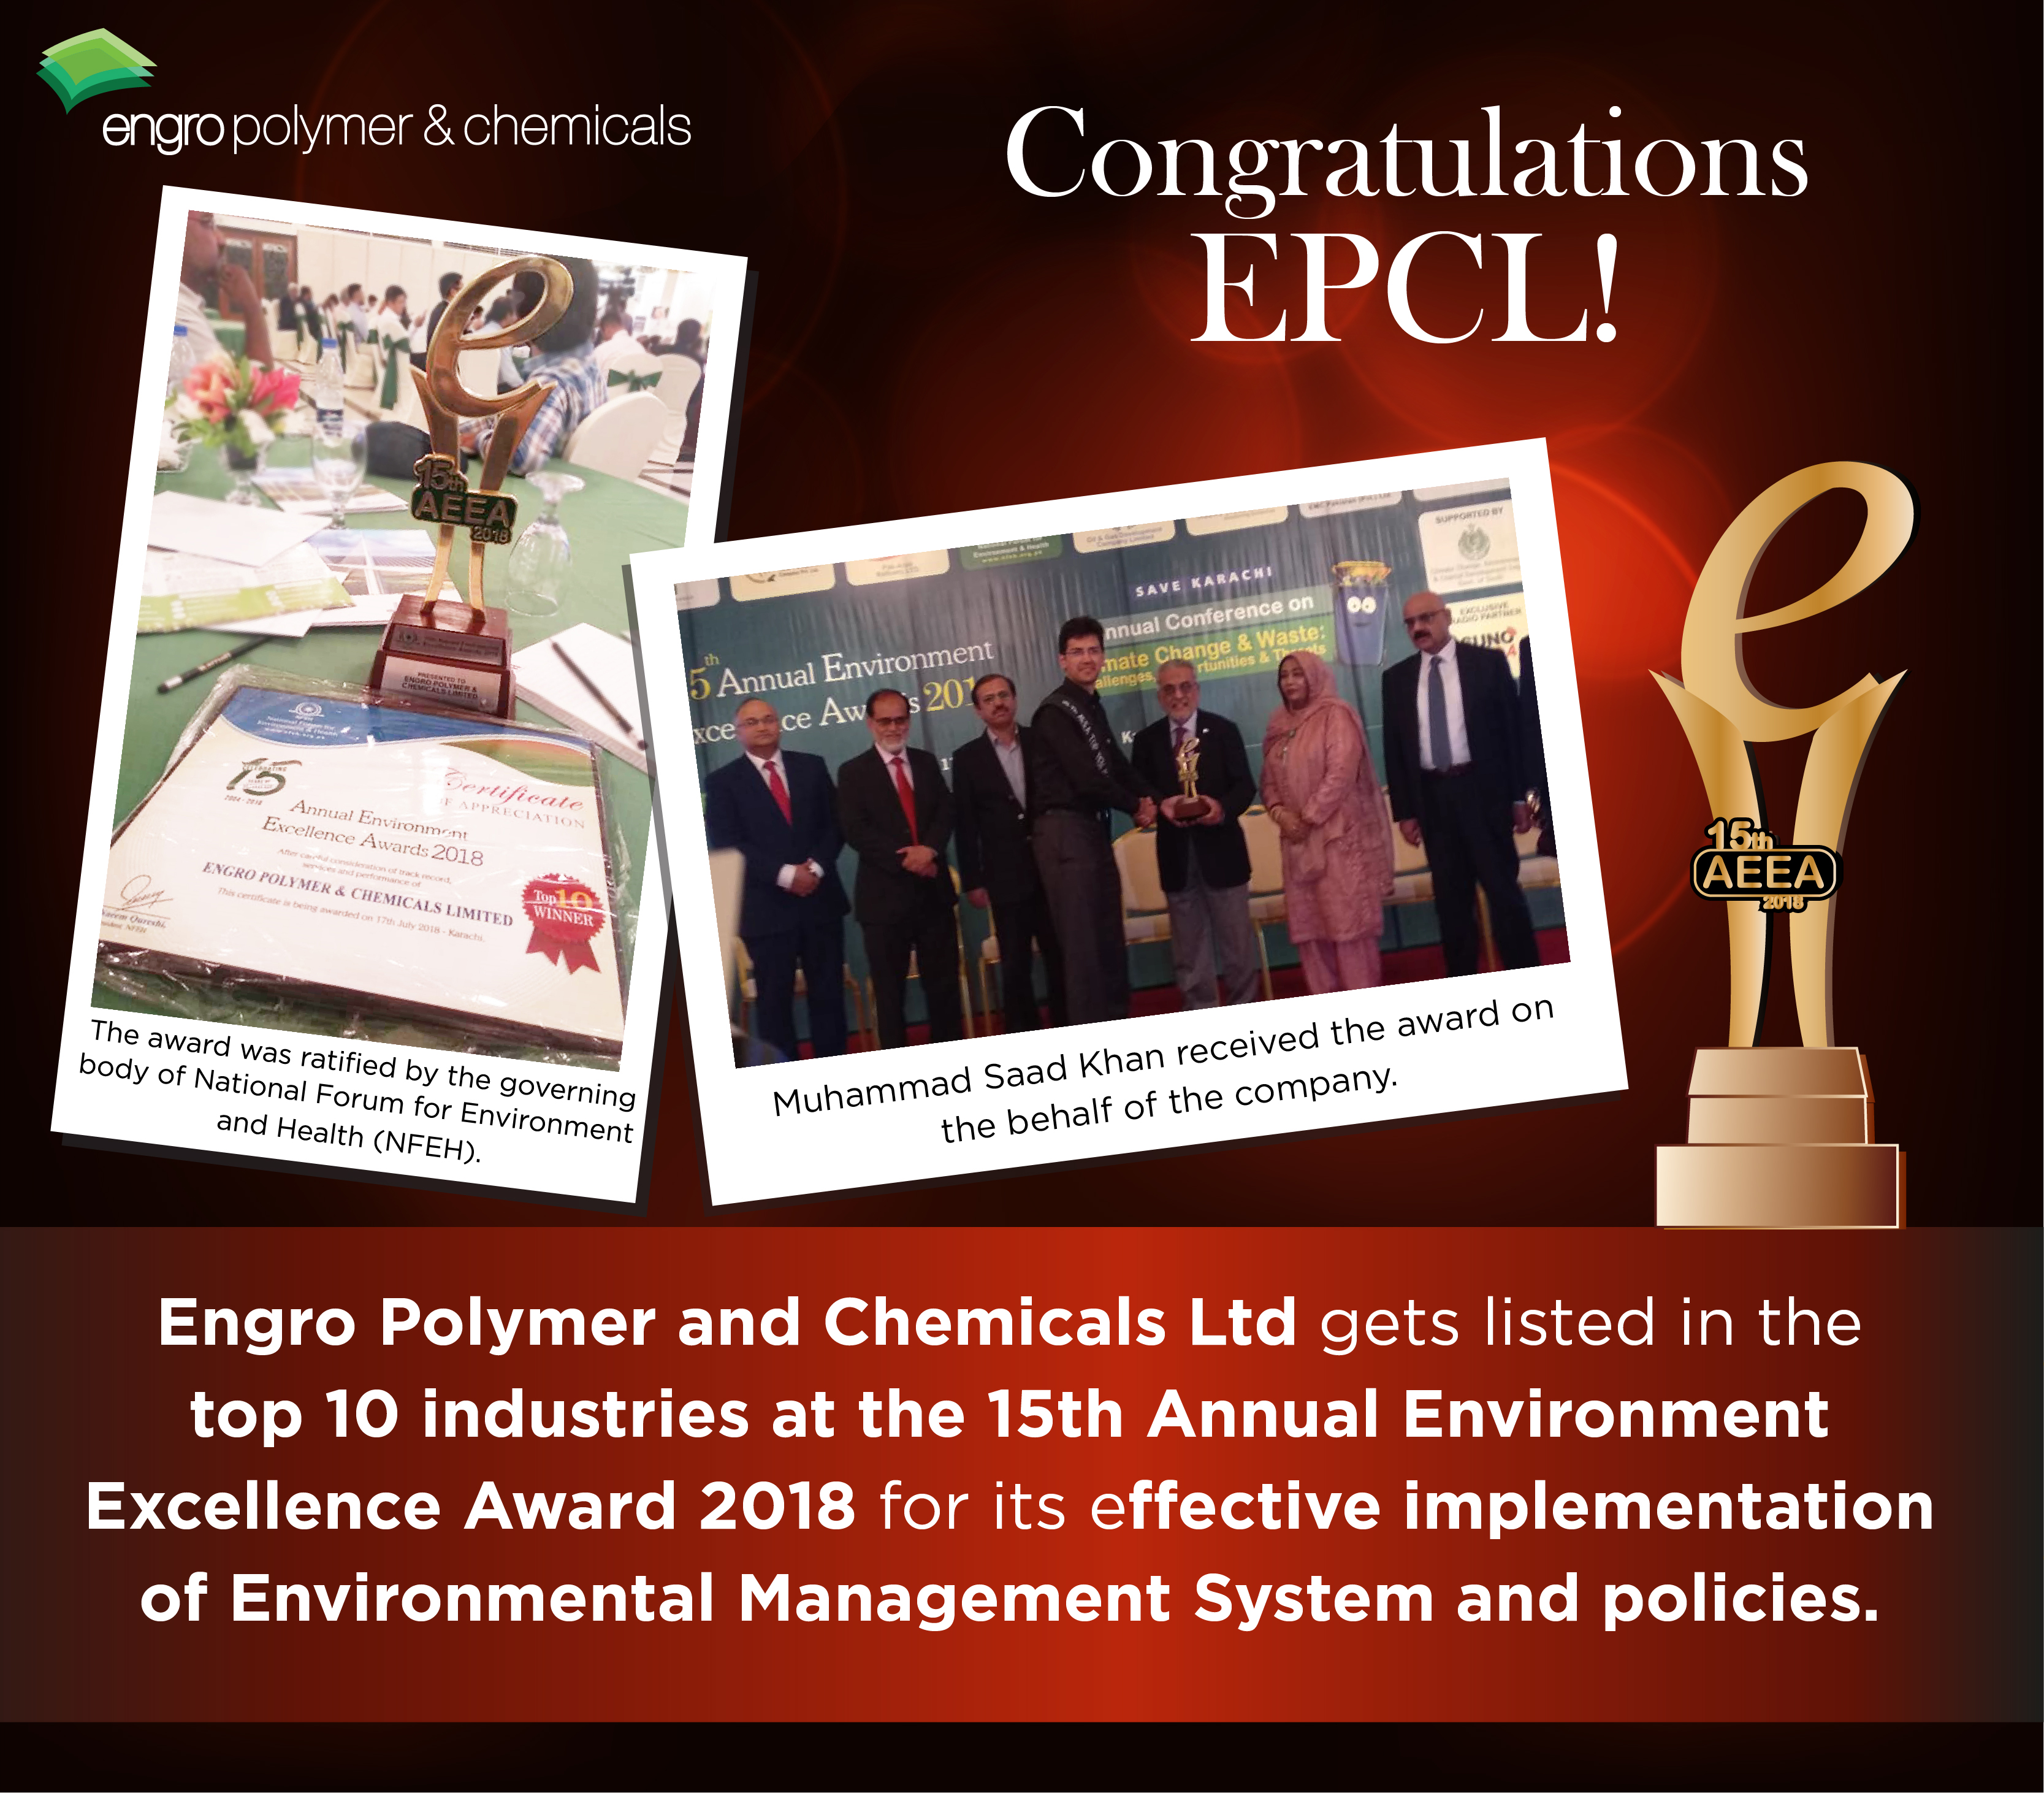 EPCL gets listed in the top 10 industries at the 15th Annual Environment Excellence Awards